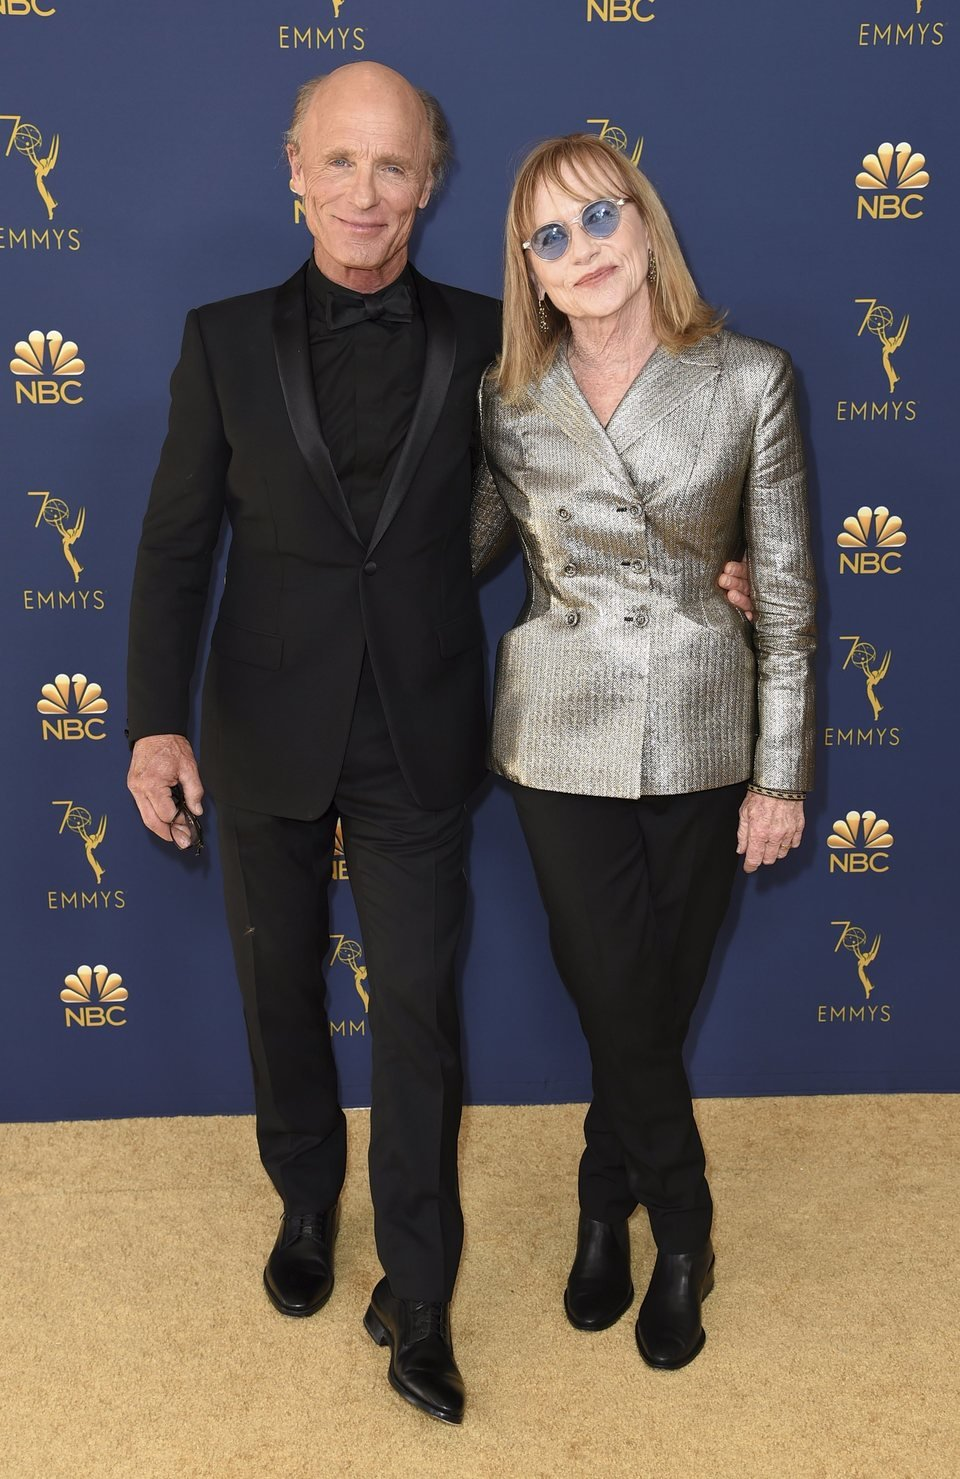 Ed Harris and Amy Madigan on the red carpet at the Emmys 2018